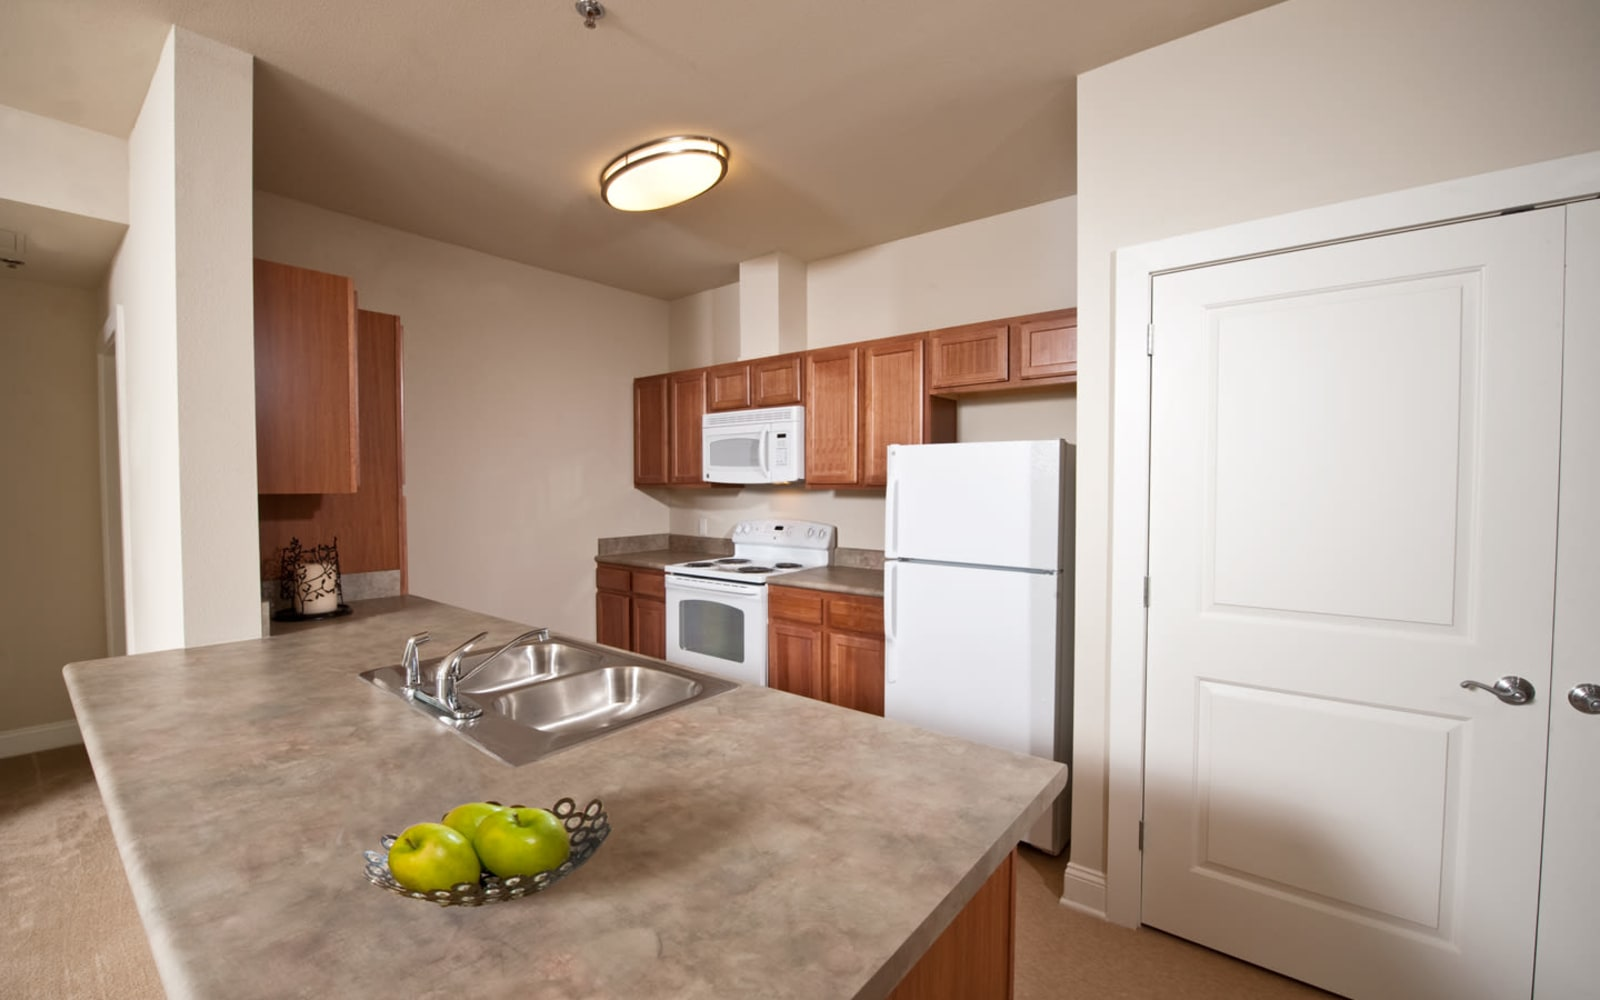 Spacious apartment kitchen at Meridian in New Orleans, Louisiana